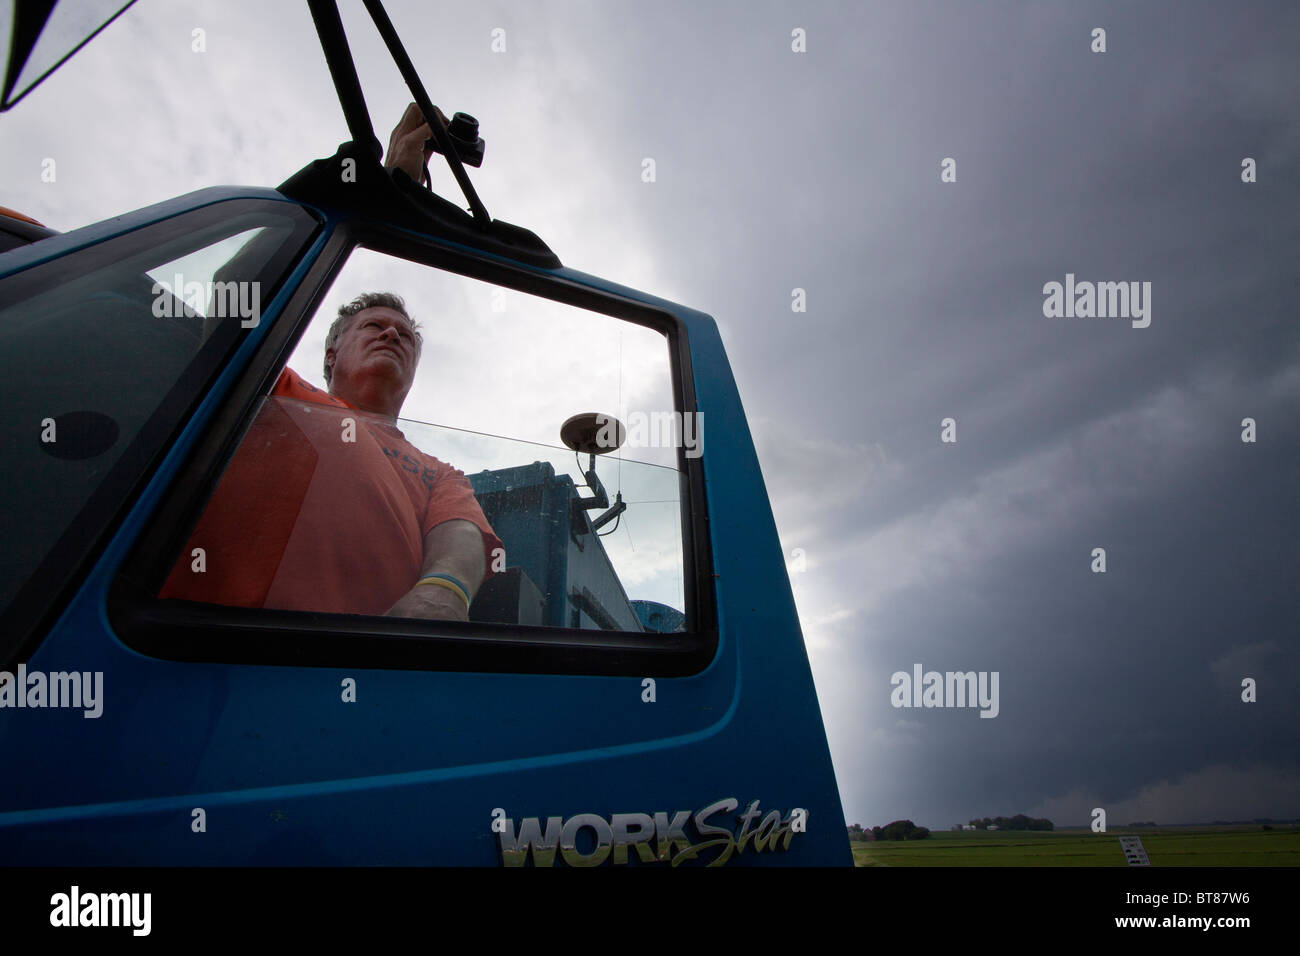 Doppler on Wheels driver Herb Stein watches a storm near Des Moines, Iowa, June 5, 2010 - Stock Image